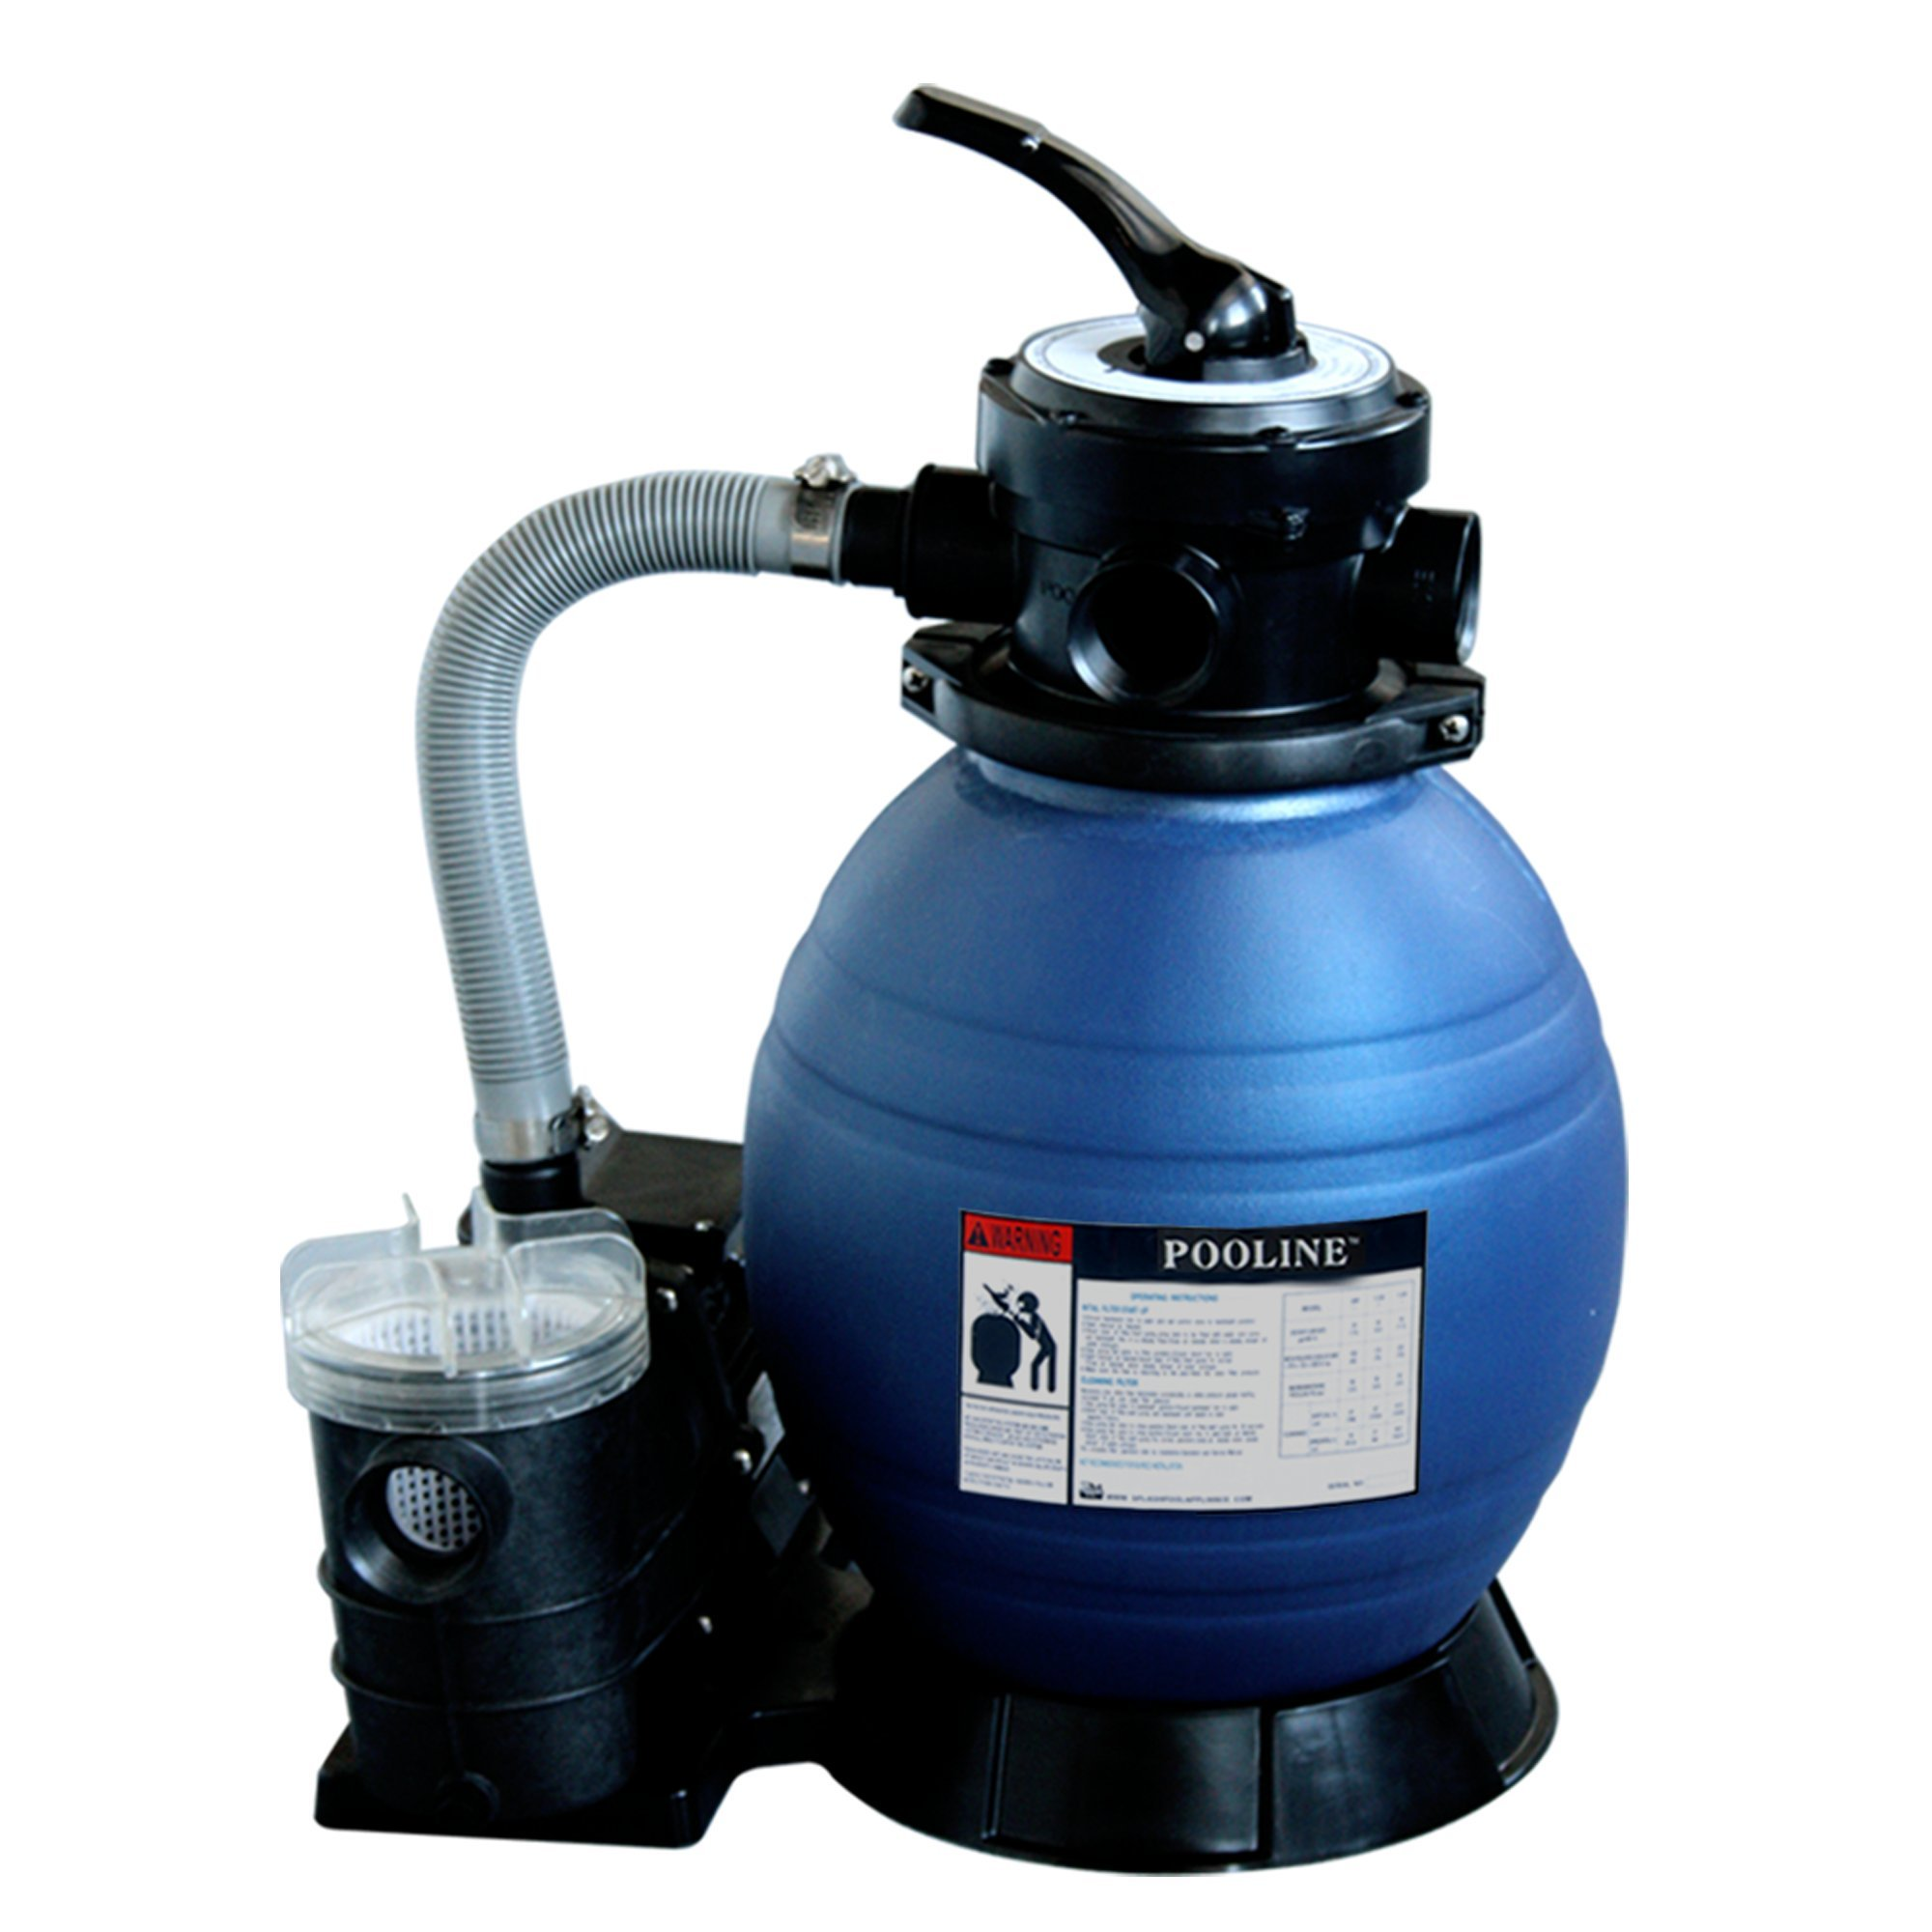 Pooline Products 11713 12'' Sand Filter with 0.25 HP Pump by Pooline